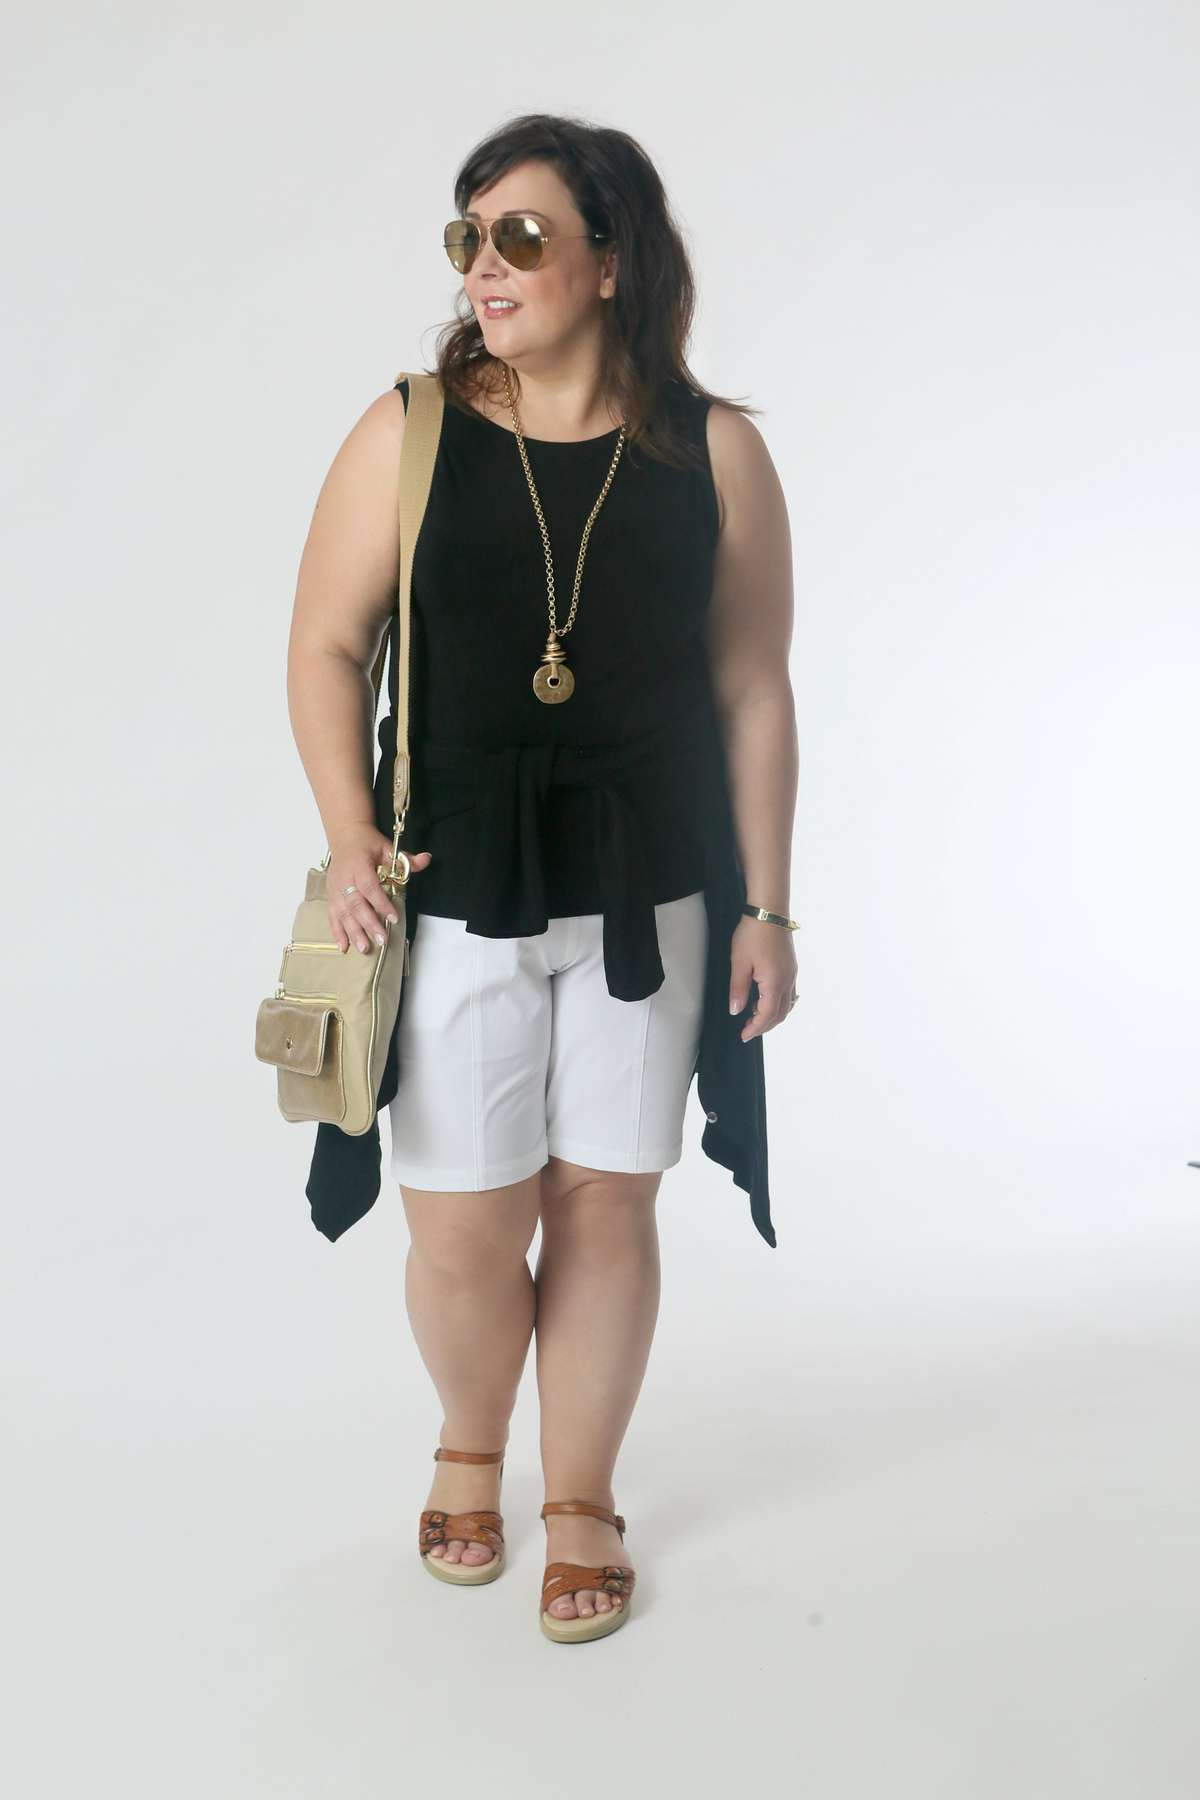 Sightseeing in the tank and shorts with the cardigan around the waist. Great if you visit places that may be chilly or houses of worship that require you to cover your shoulders. Comfy sandals, a crossbody to hold everything, and a necklace for interest.